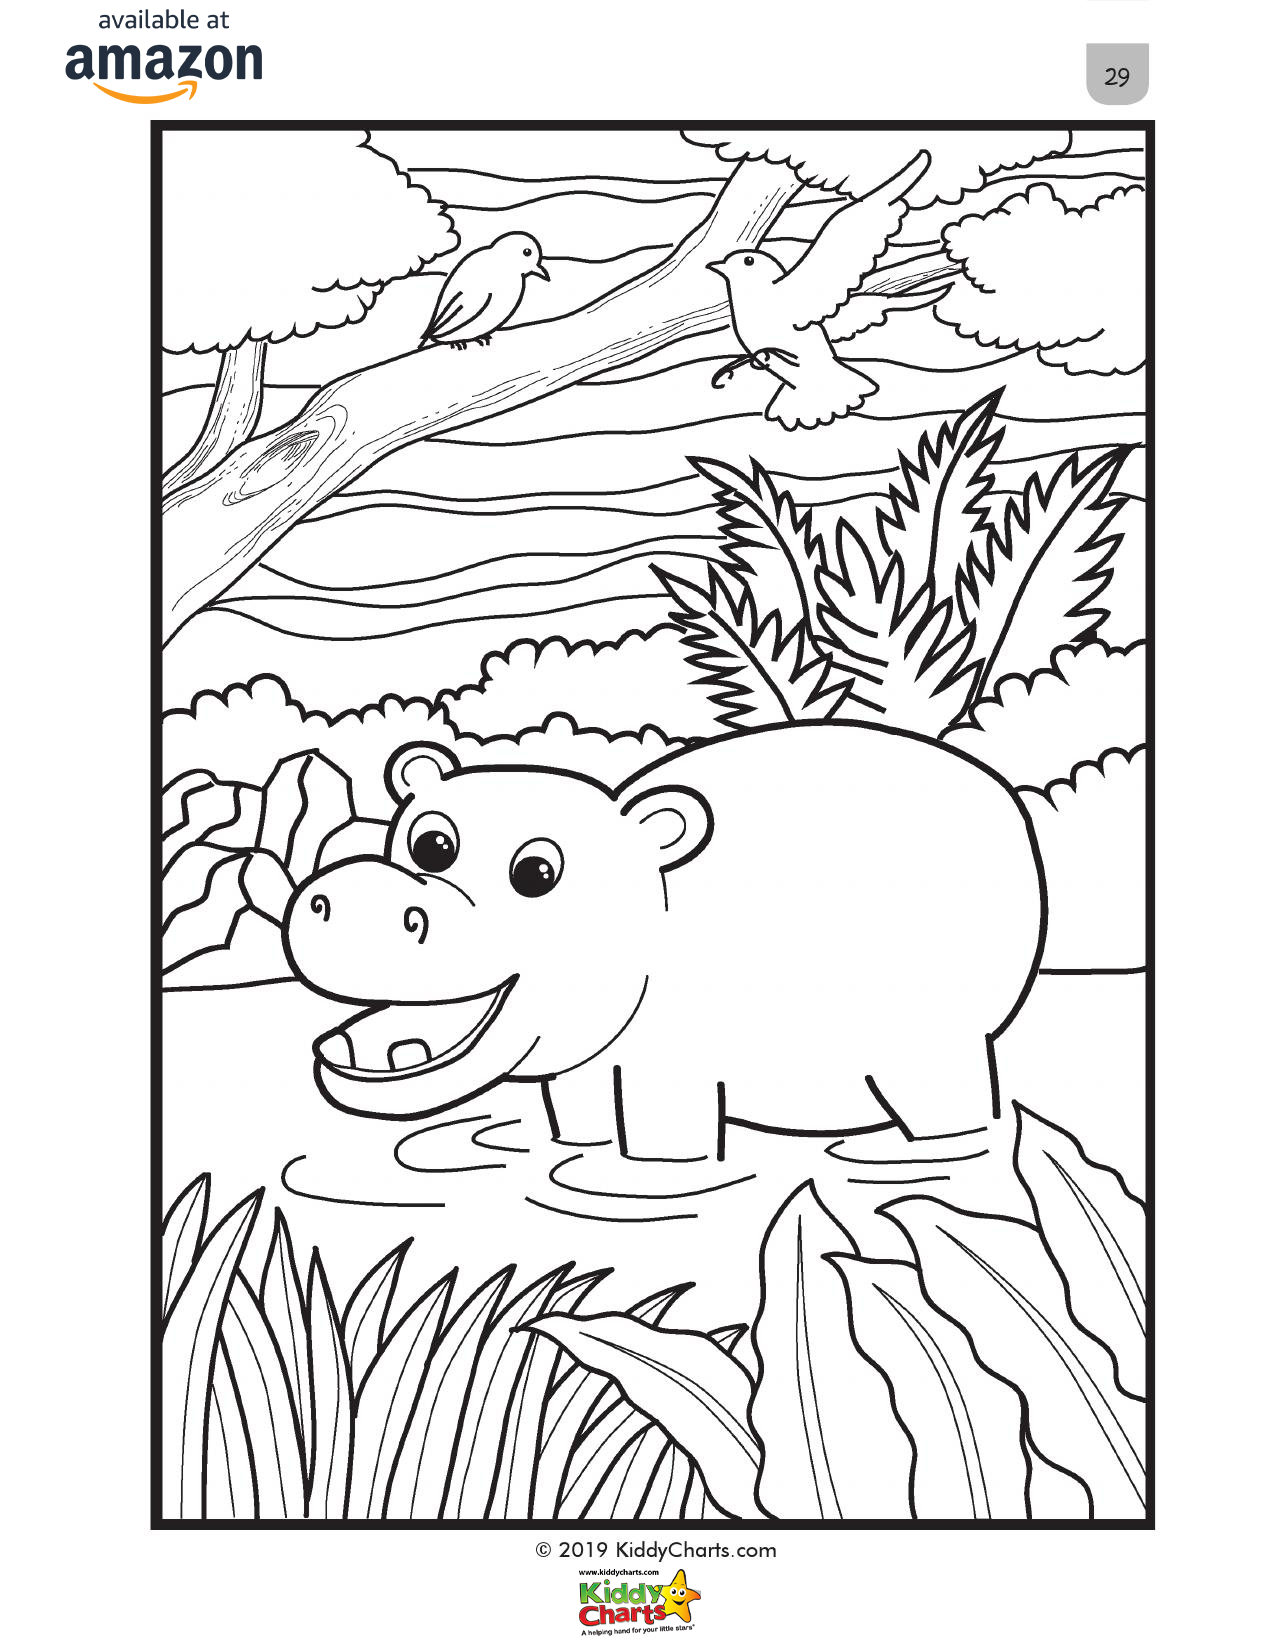 Free Hippo Mindful Coloring Pages Buy Our Coloring Book For Adults And Kids On Amazon Today